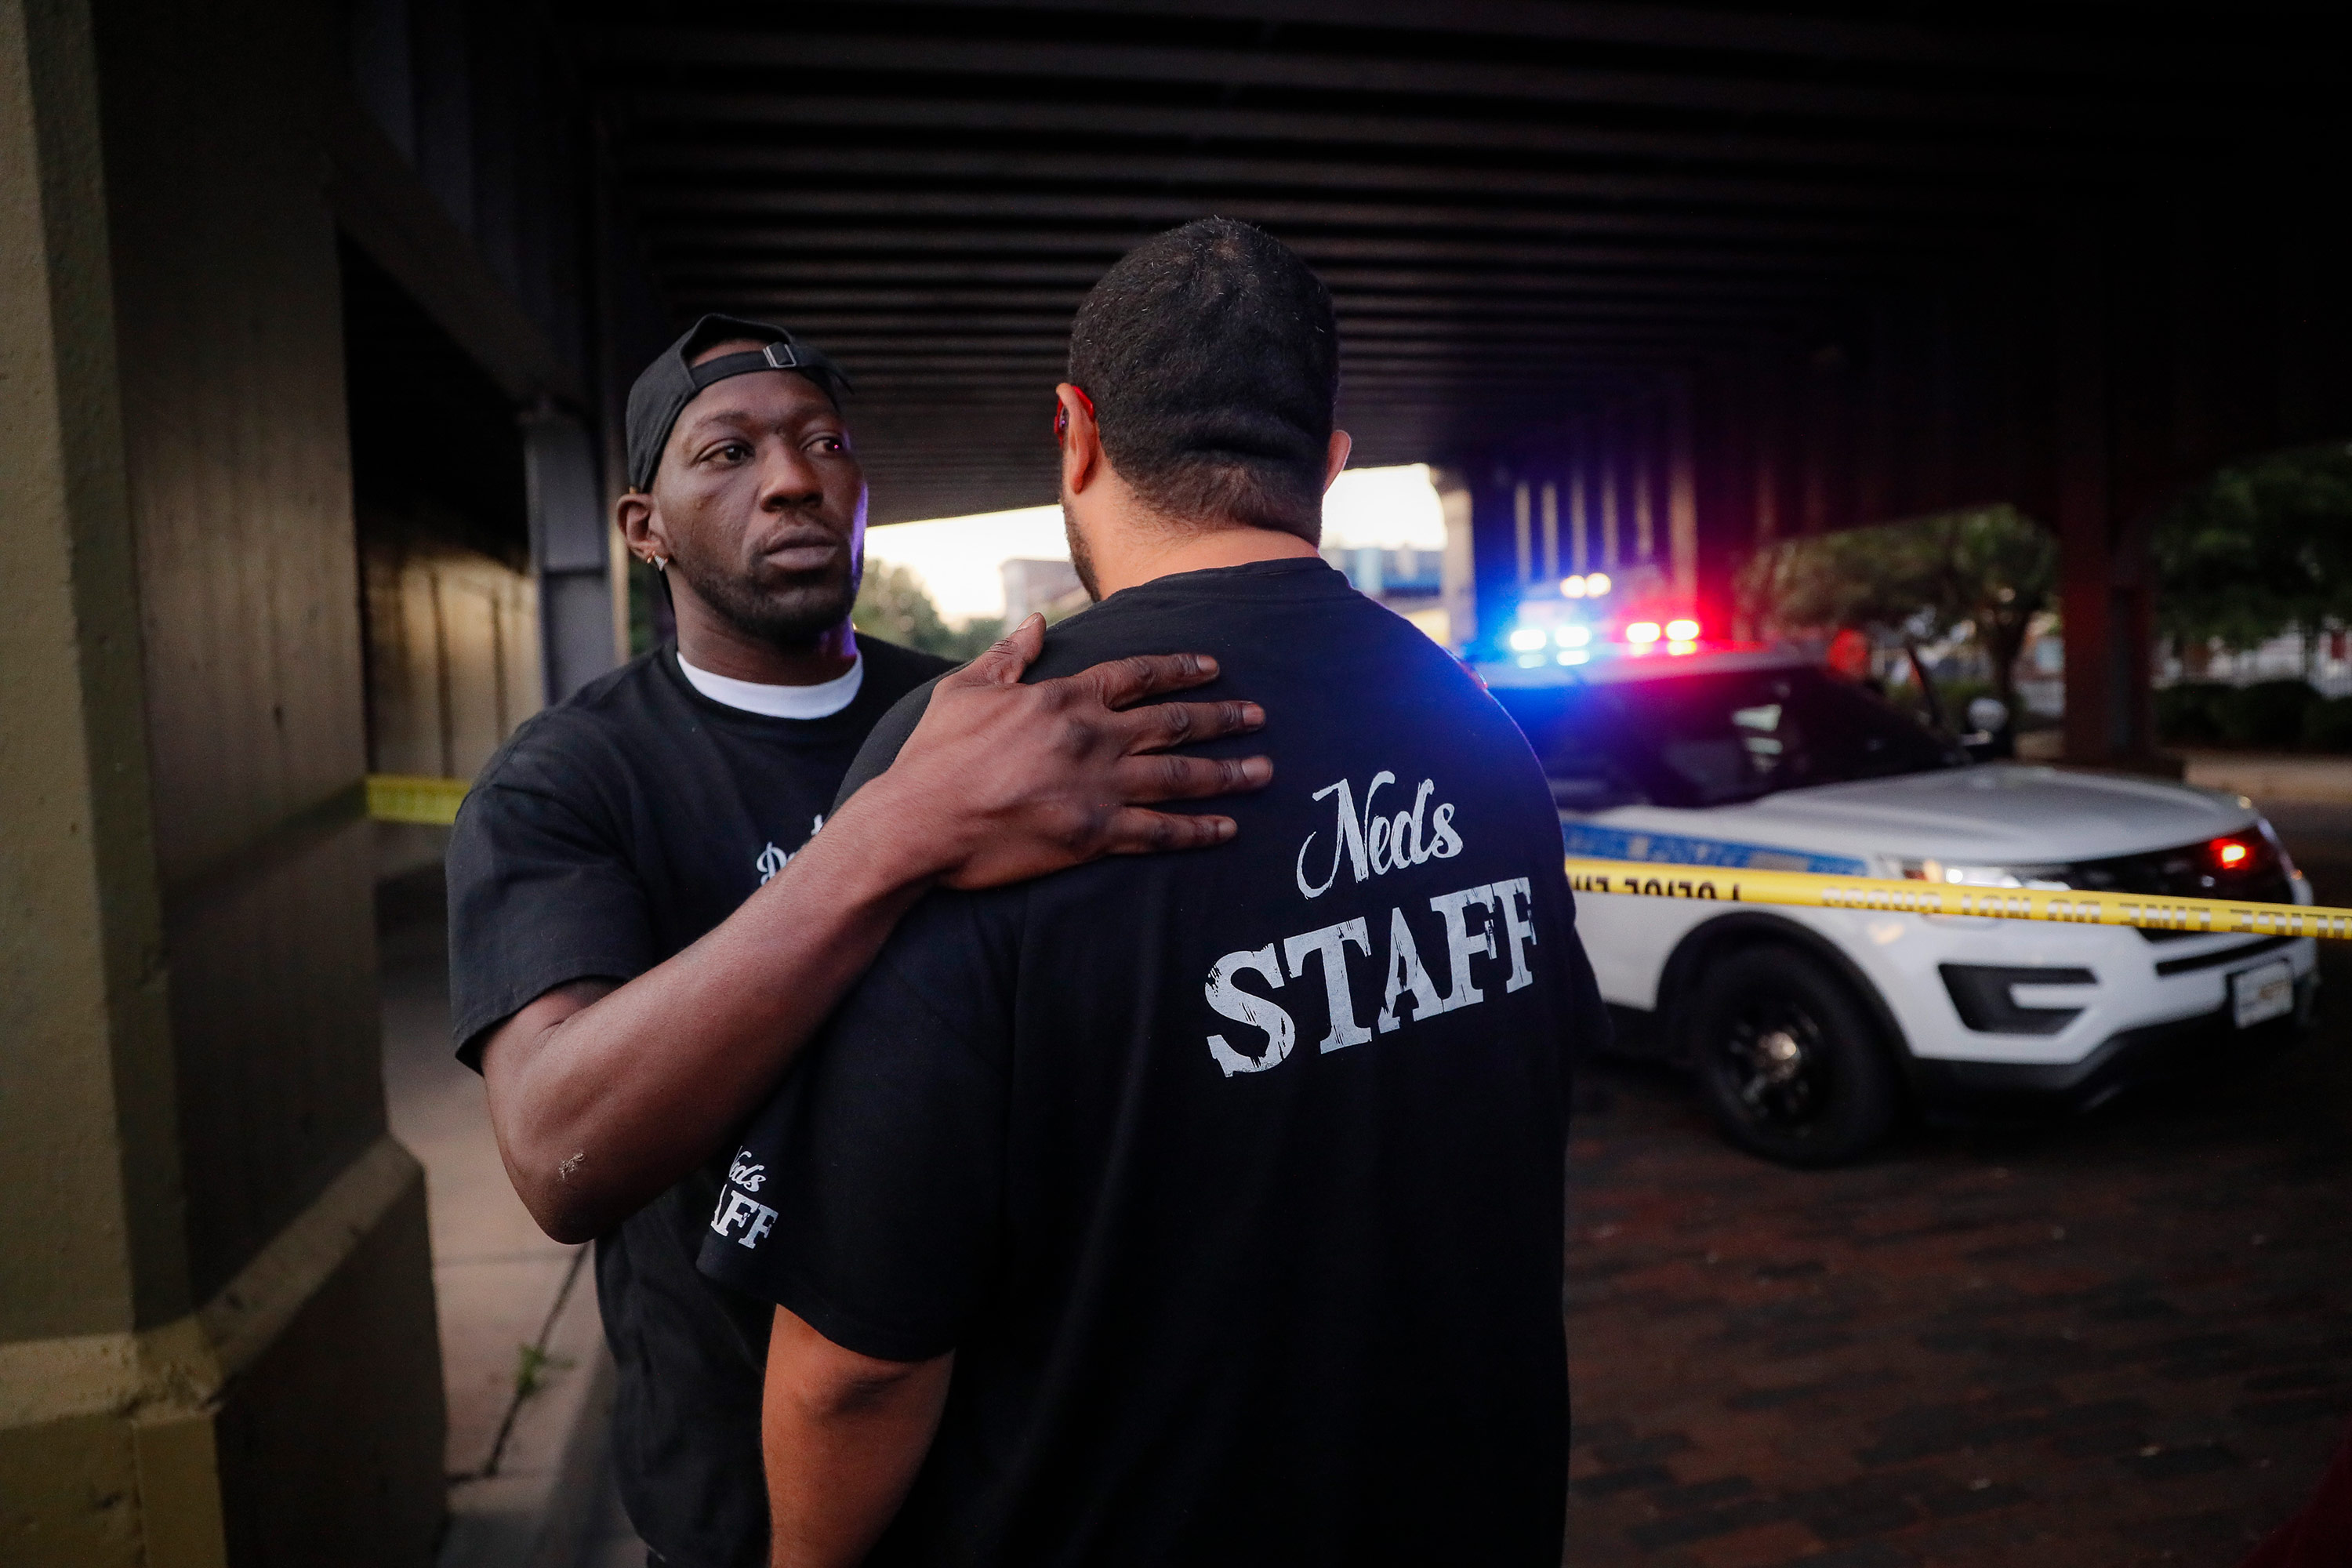 Witnesses comfort one another at the scene of the mass shooting in Dayton, Ohio.